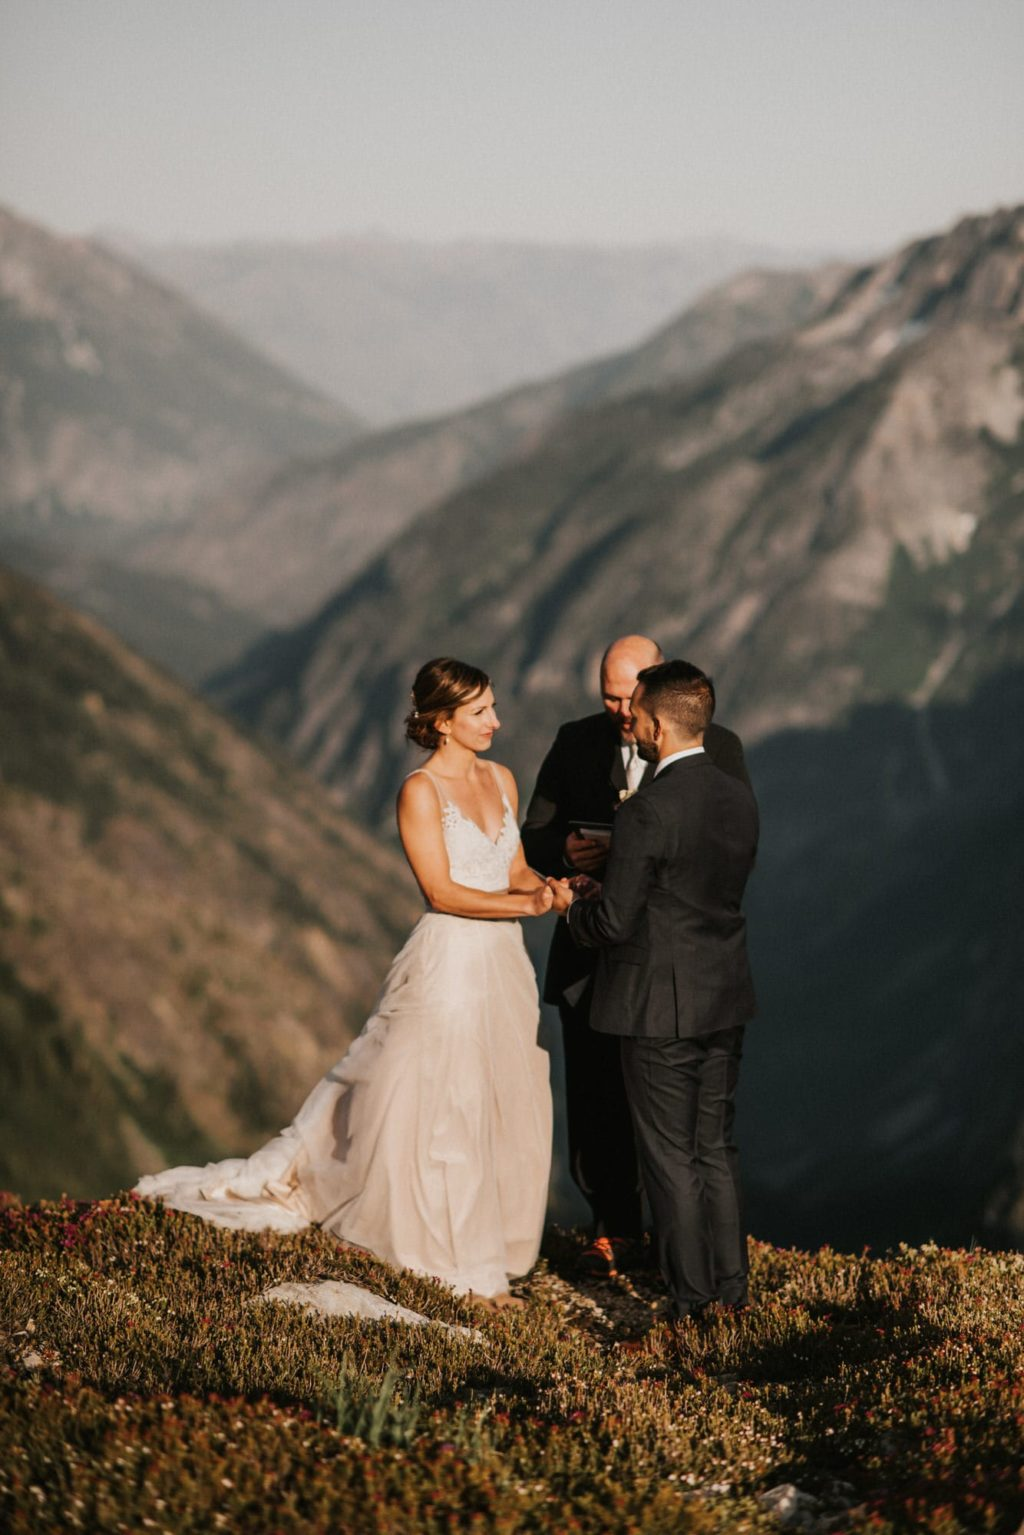 Vertical image from an epic North Cascades Adventure Wedding